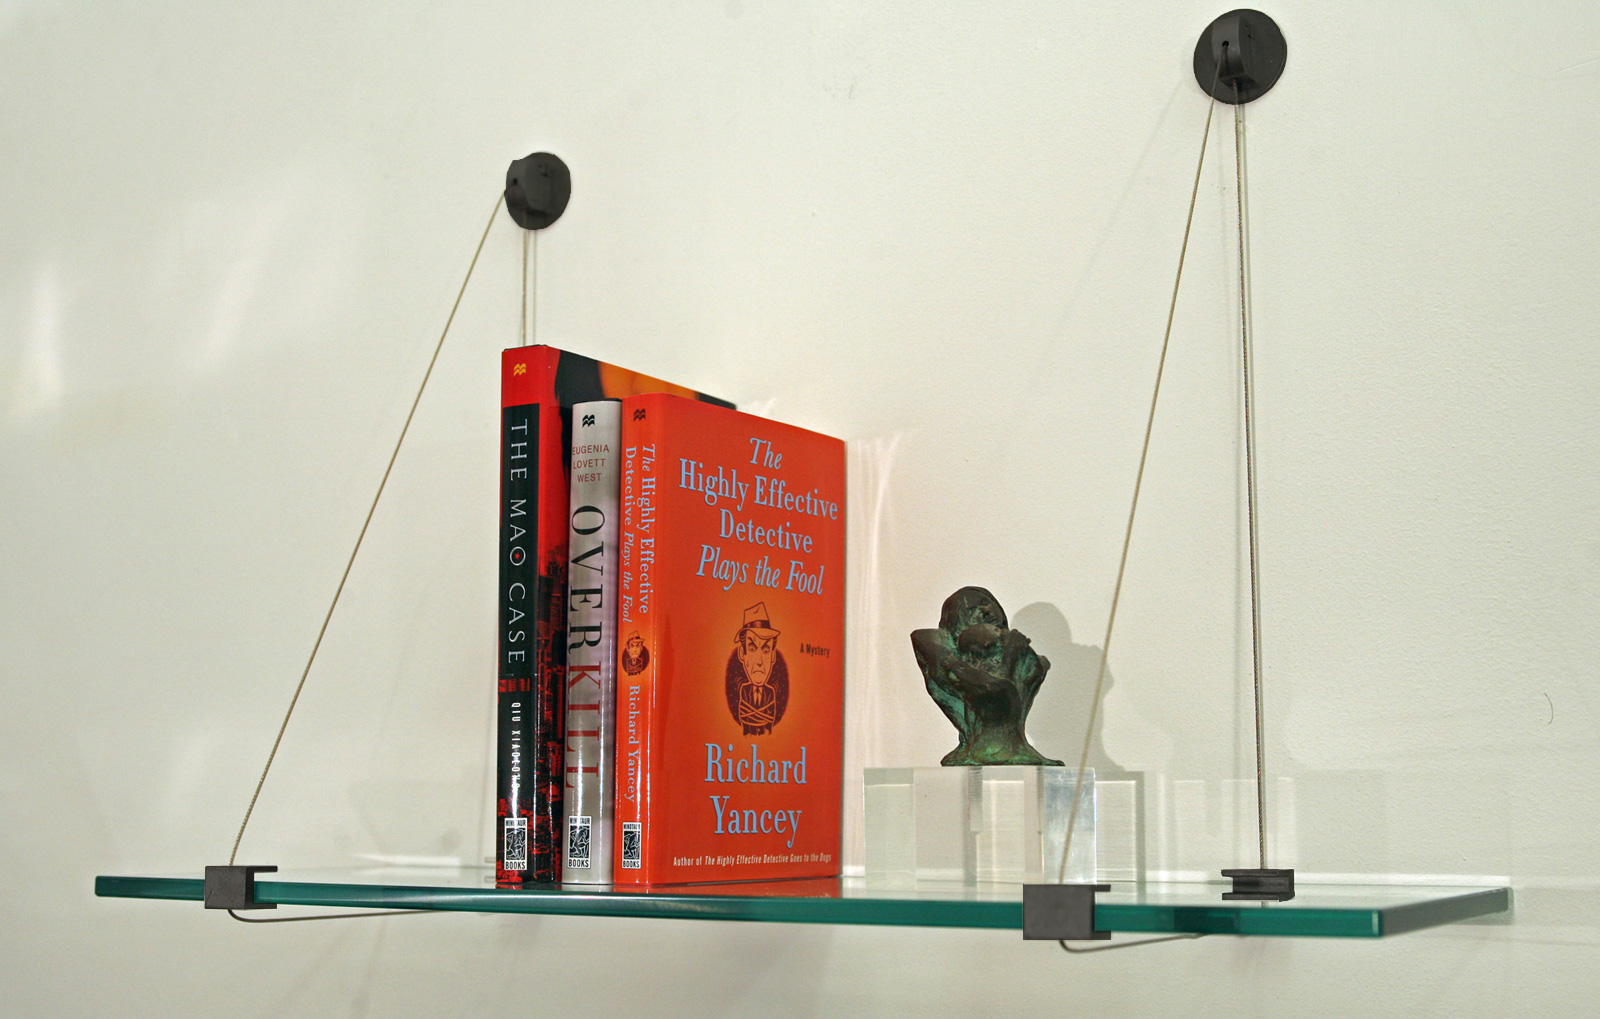 8 Inch Crane Cable Glass Shelf - Black in Wall Mounted Shelves